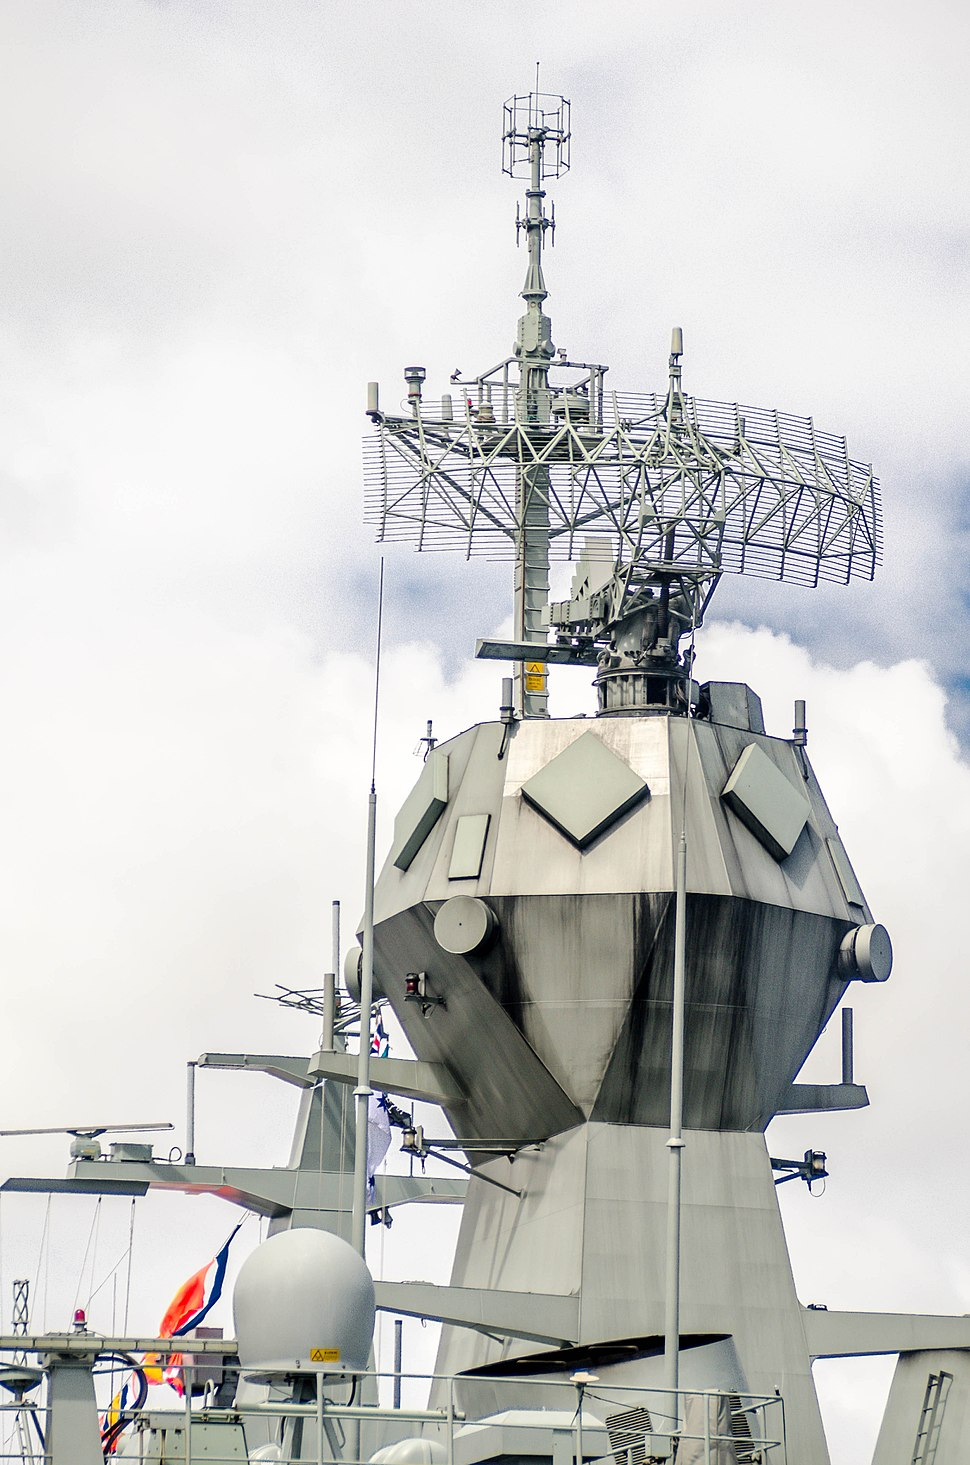 HMAS Perth (FFH 157) CEAFAR phased array radars